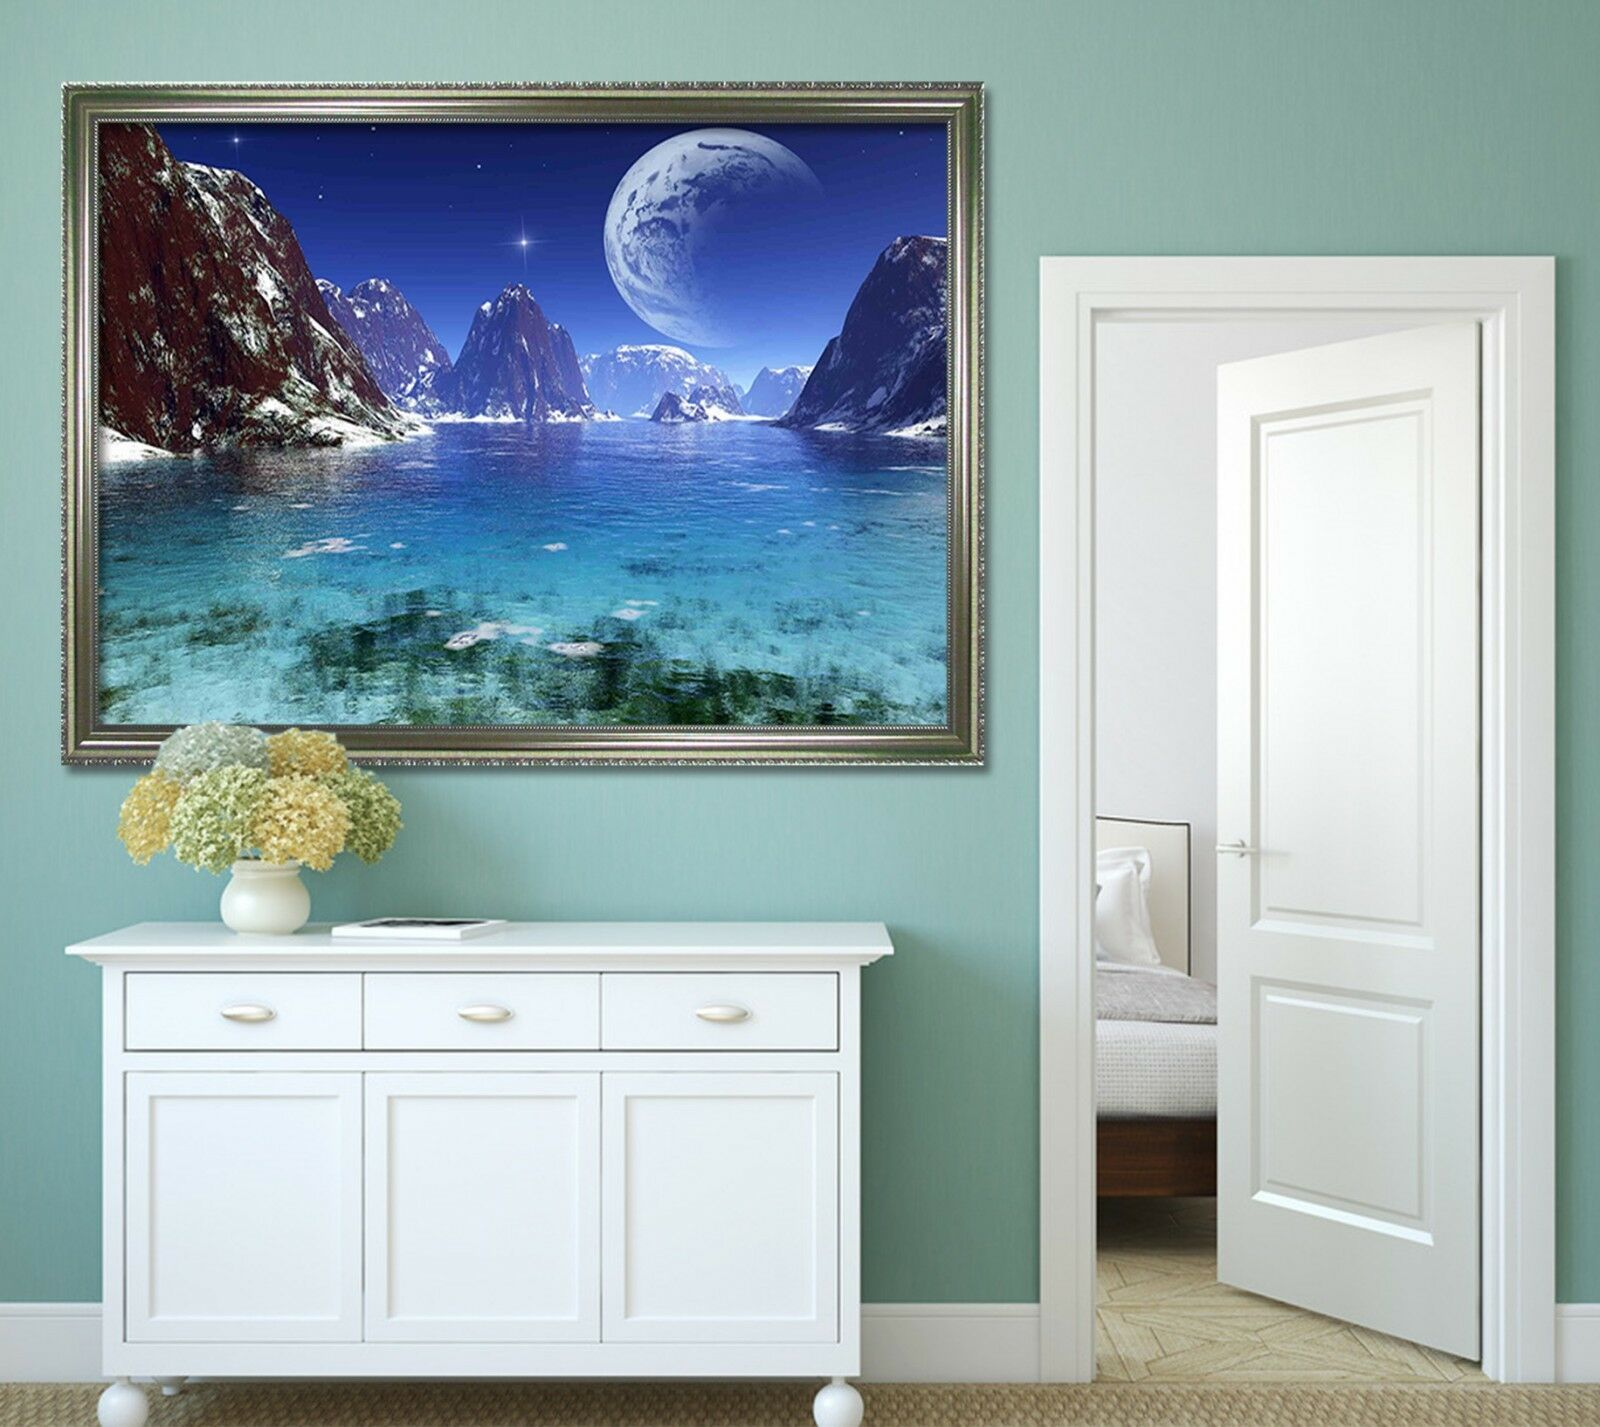 3D Moon River 677 Fake Framed Poster Home Decor Print Painting Unique Art Summer